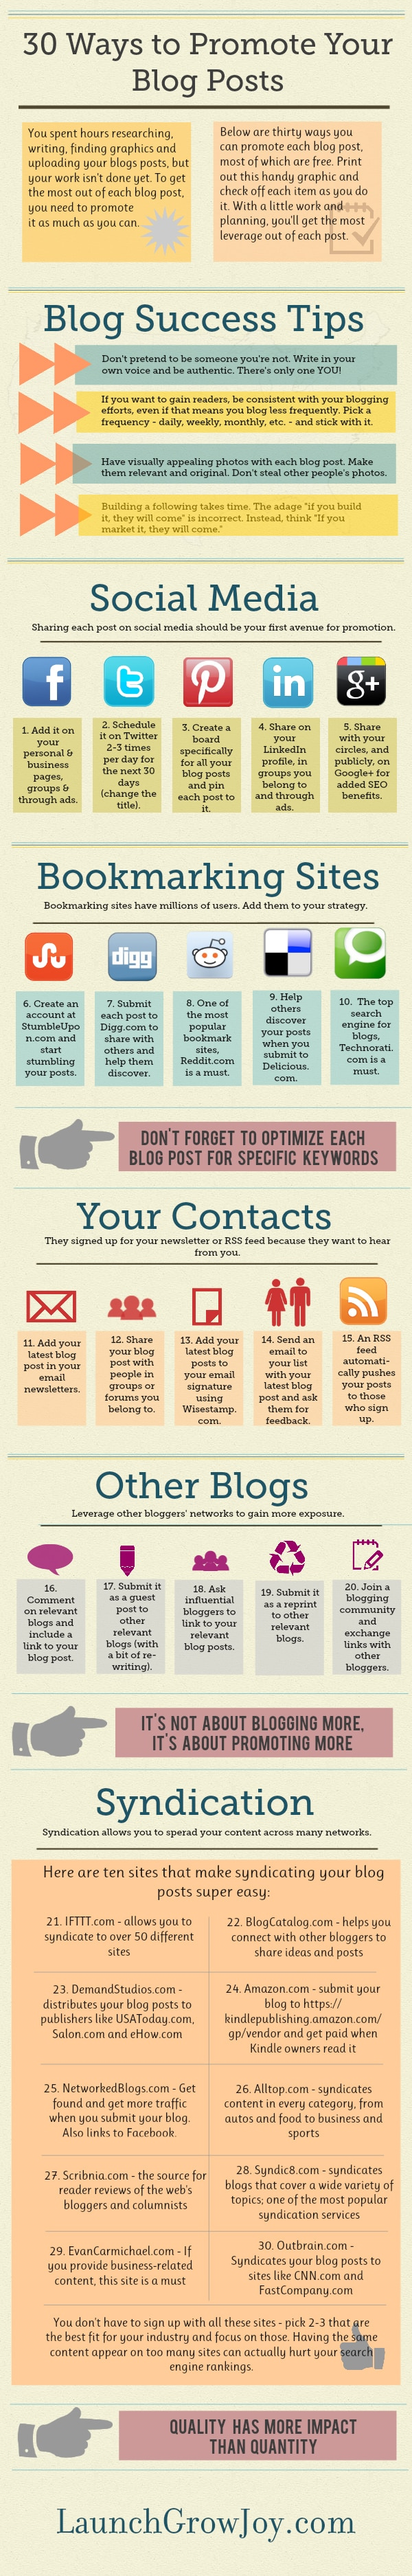 ways-promote-your-blog-infographic